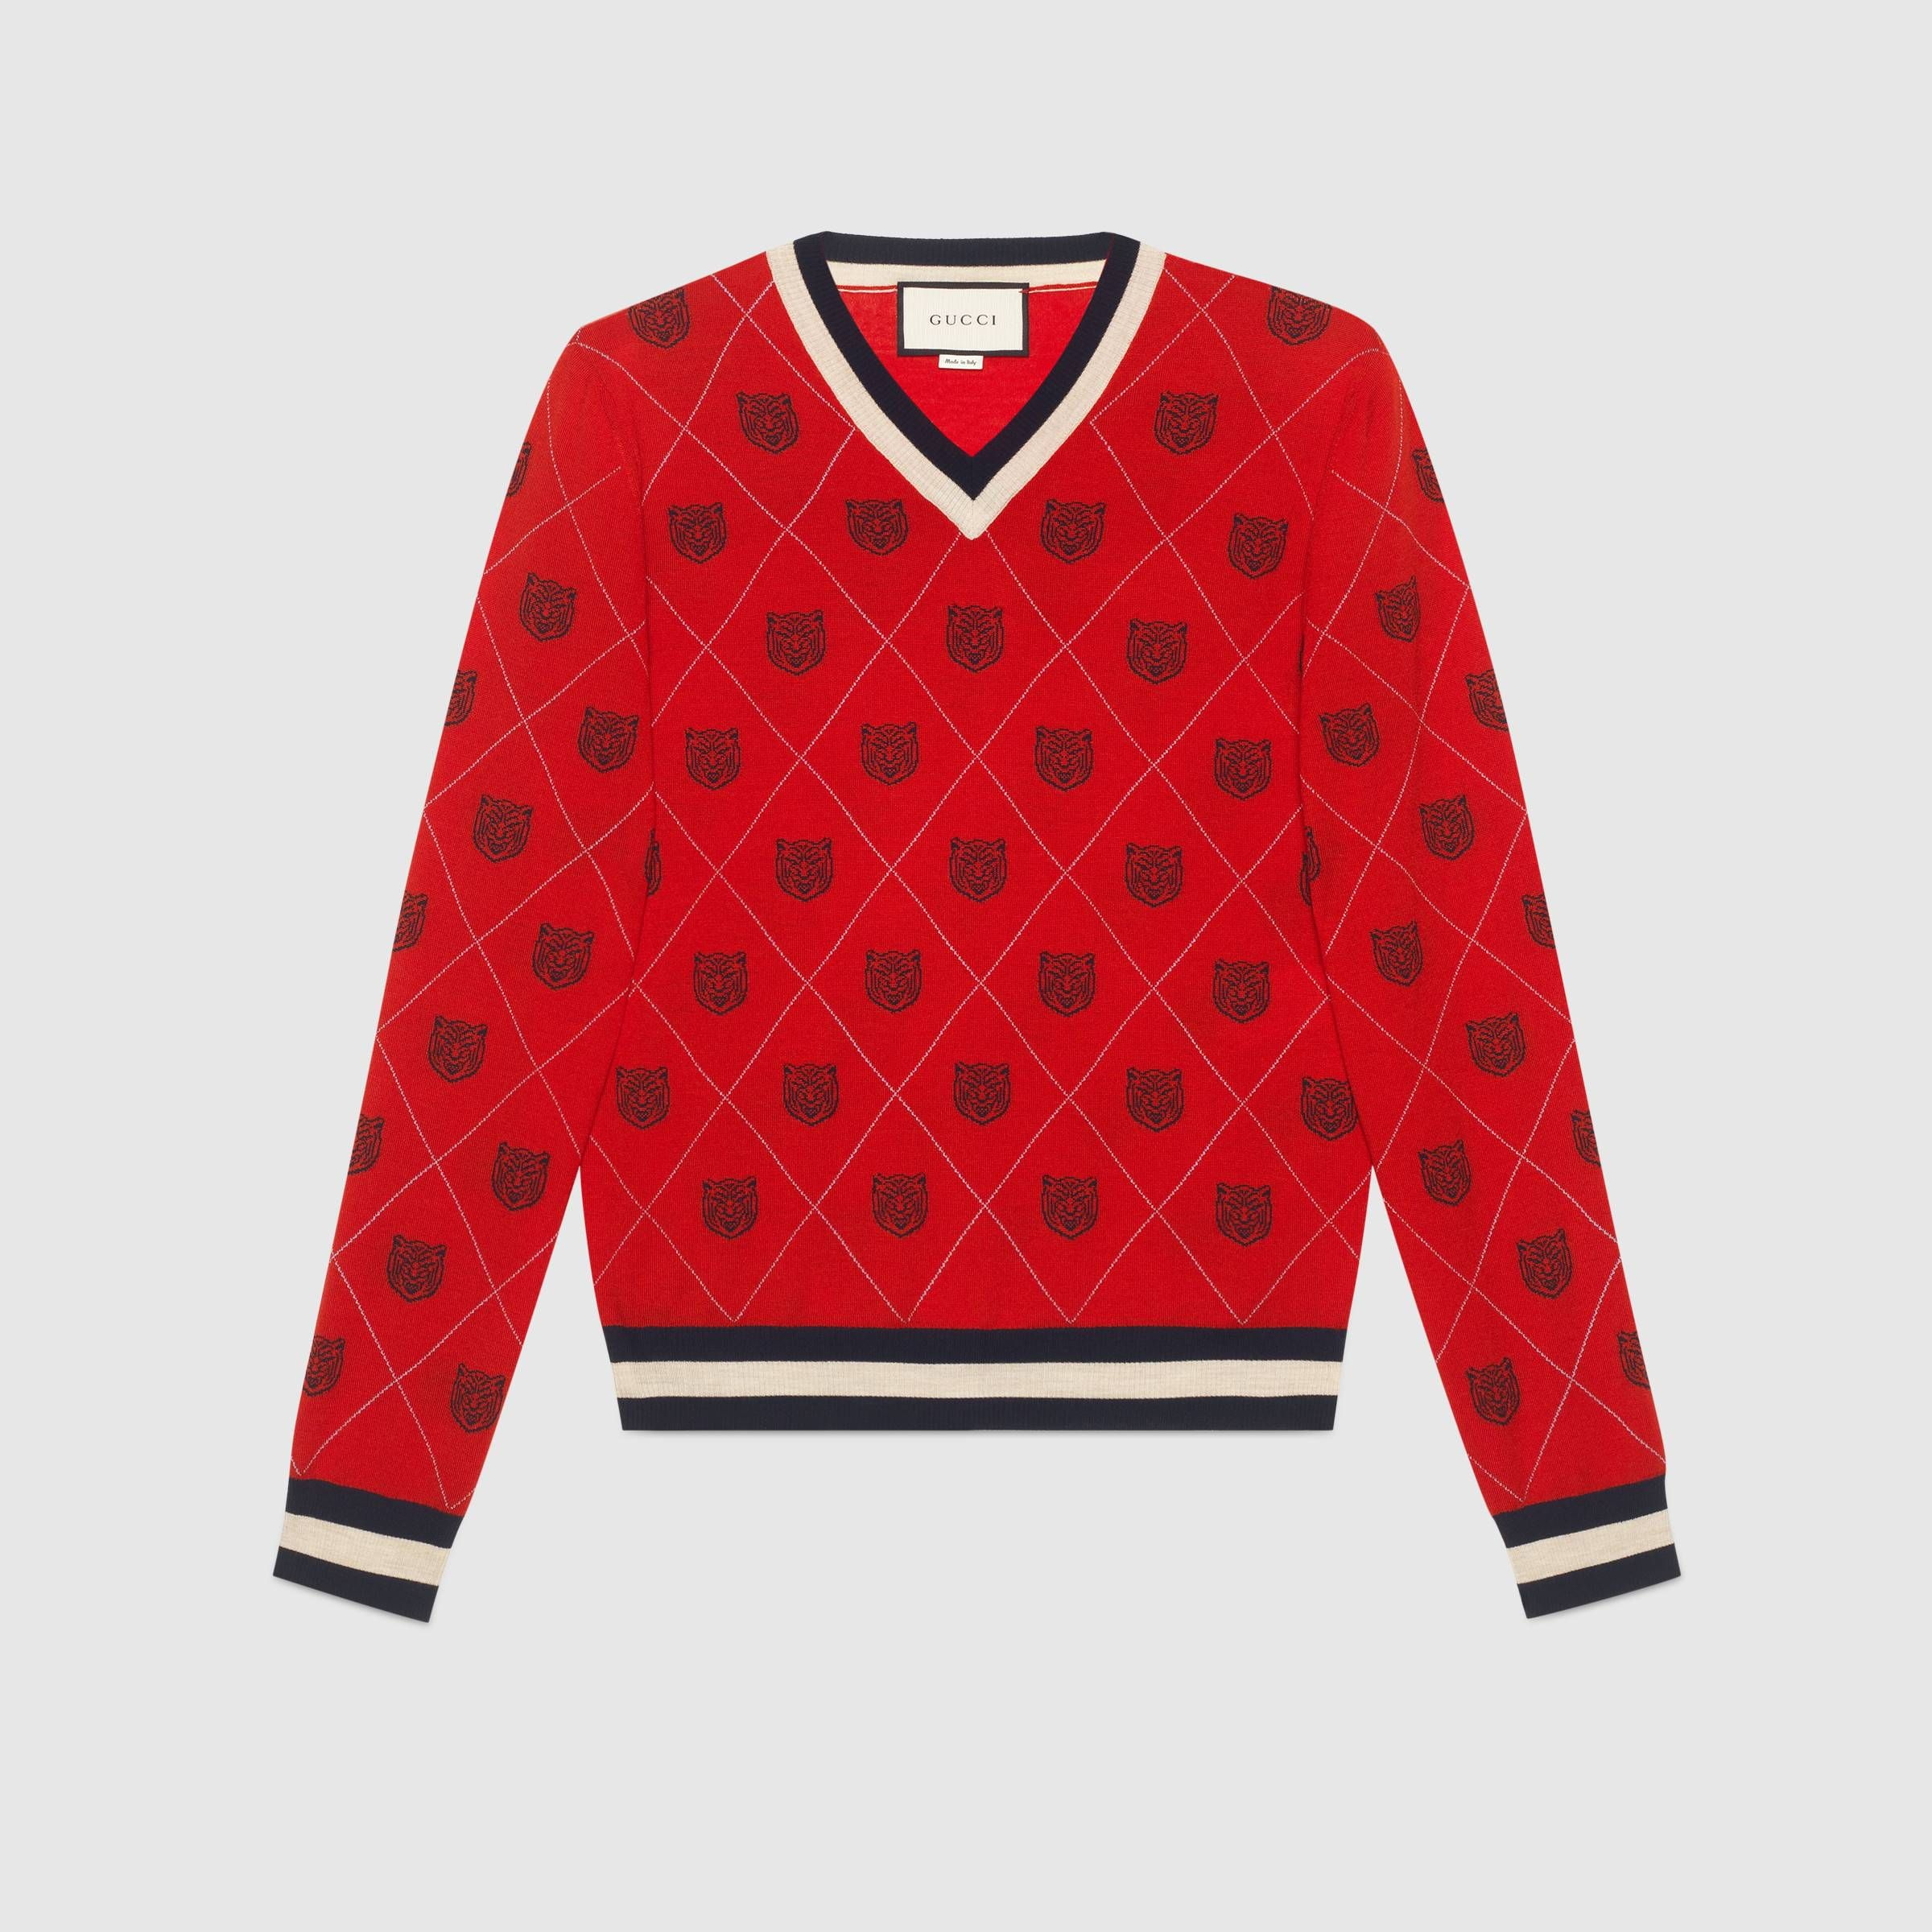 65954c2c677 Tiger argyle wool sweater - Gucci Men s Sweaters   Cardigans 474320X14646703